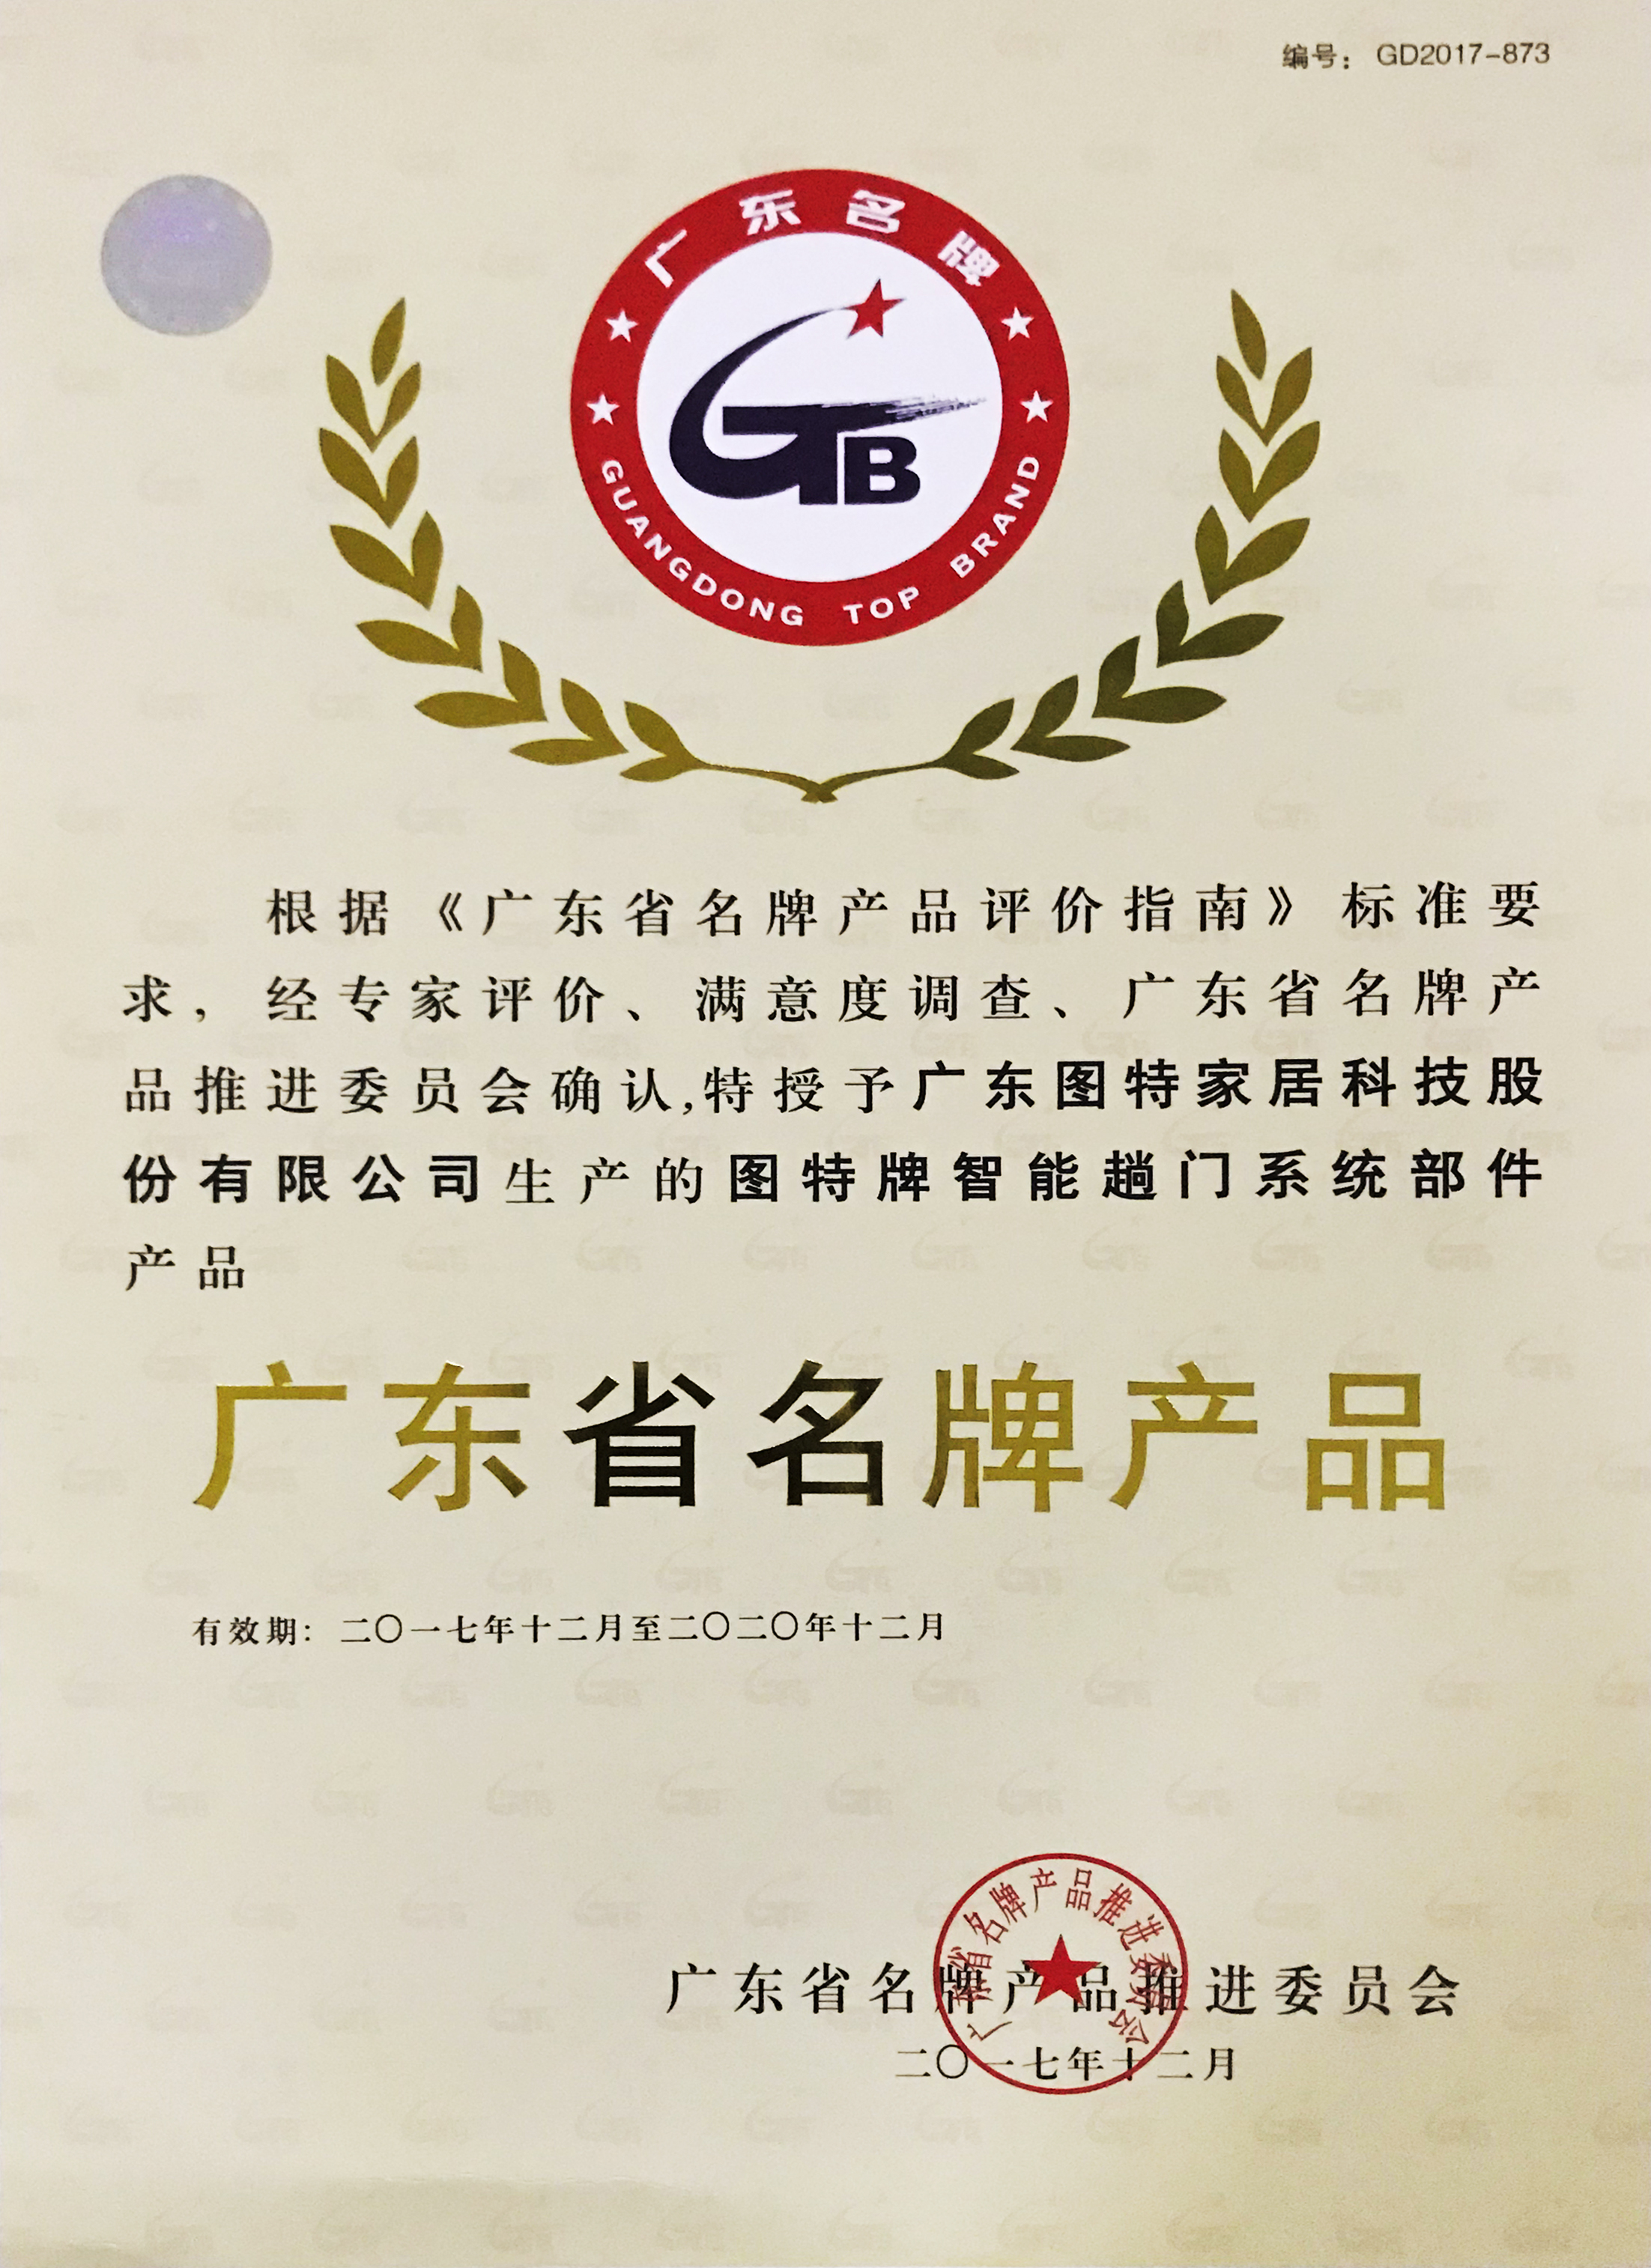 Guangdong famous brand products